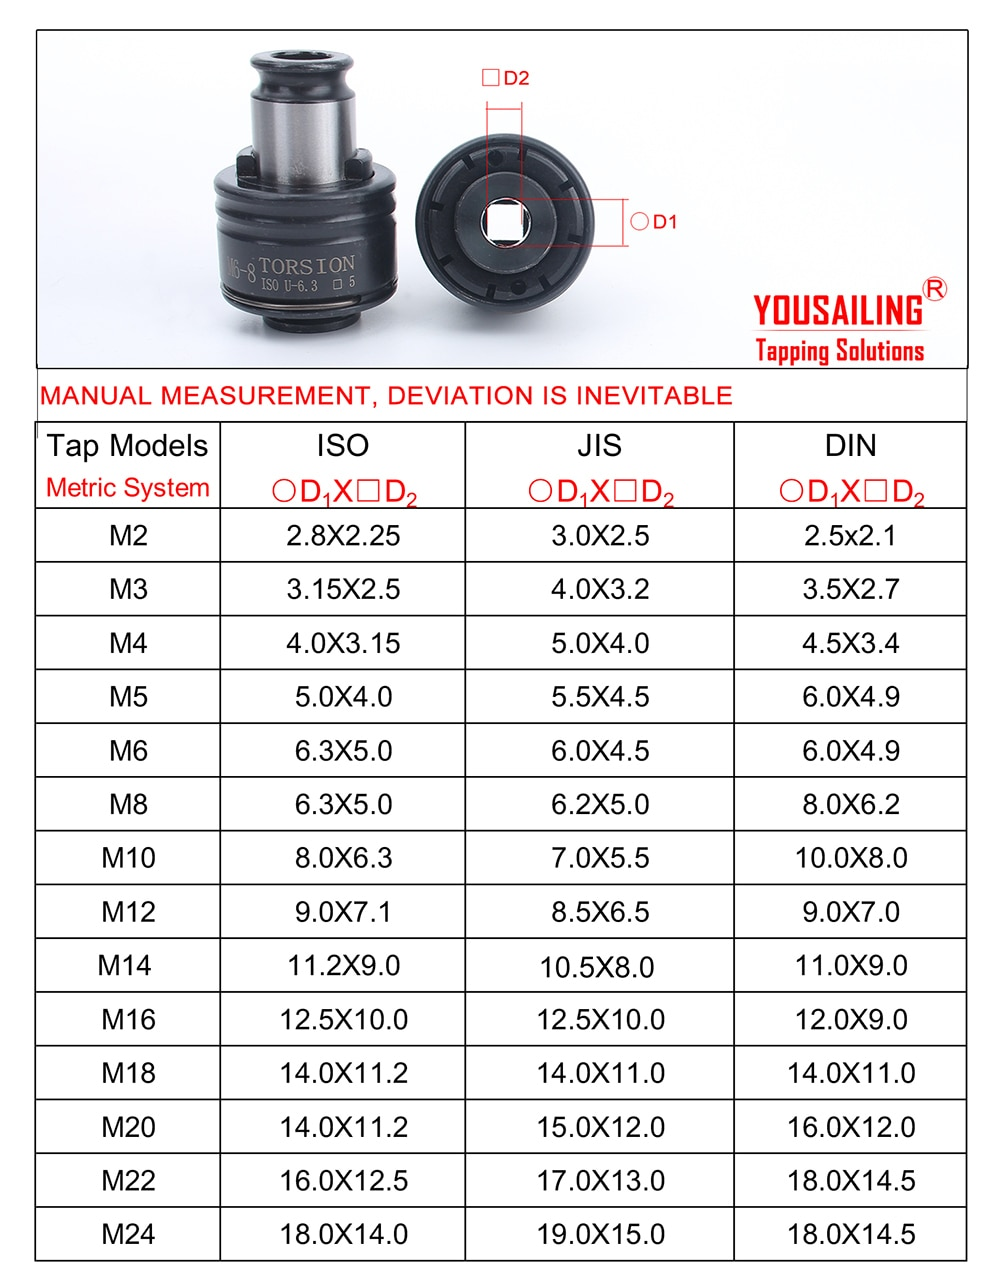 GT12 19mm ISO/DIN/JIS  M3-M12 Set Tapping Collets Chucks  Pneumatic Tapping Machine Chucks With Overload Protection enlarge